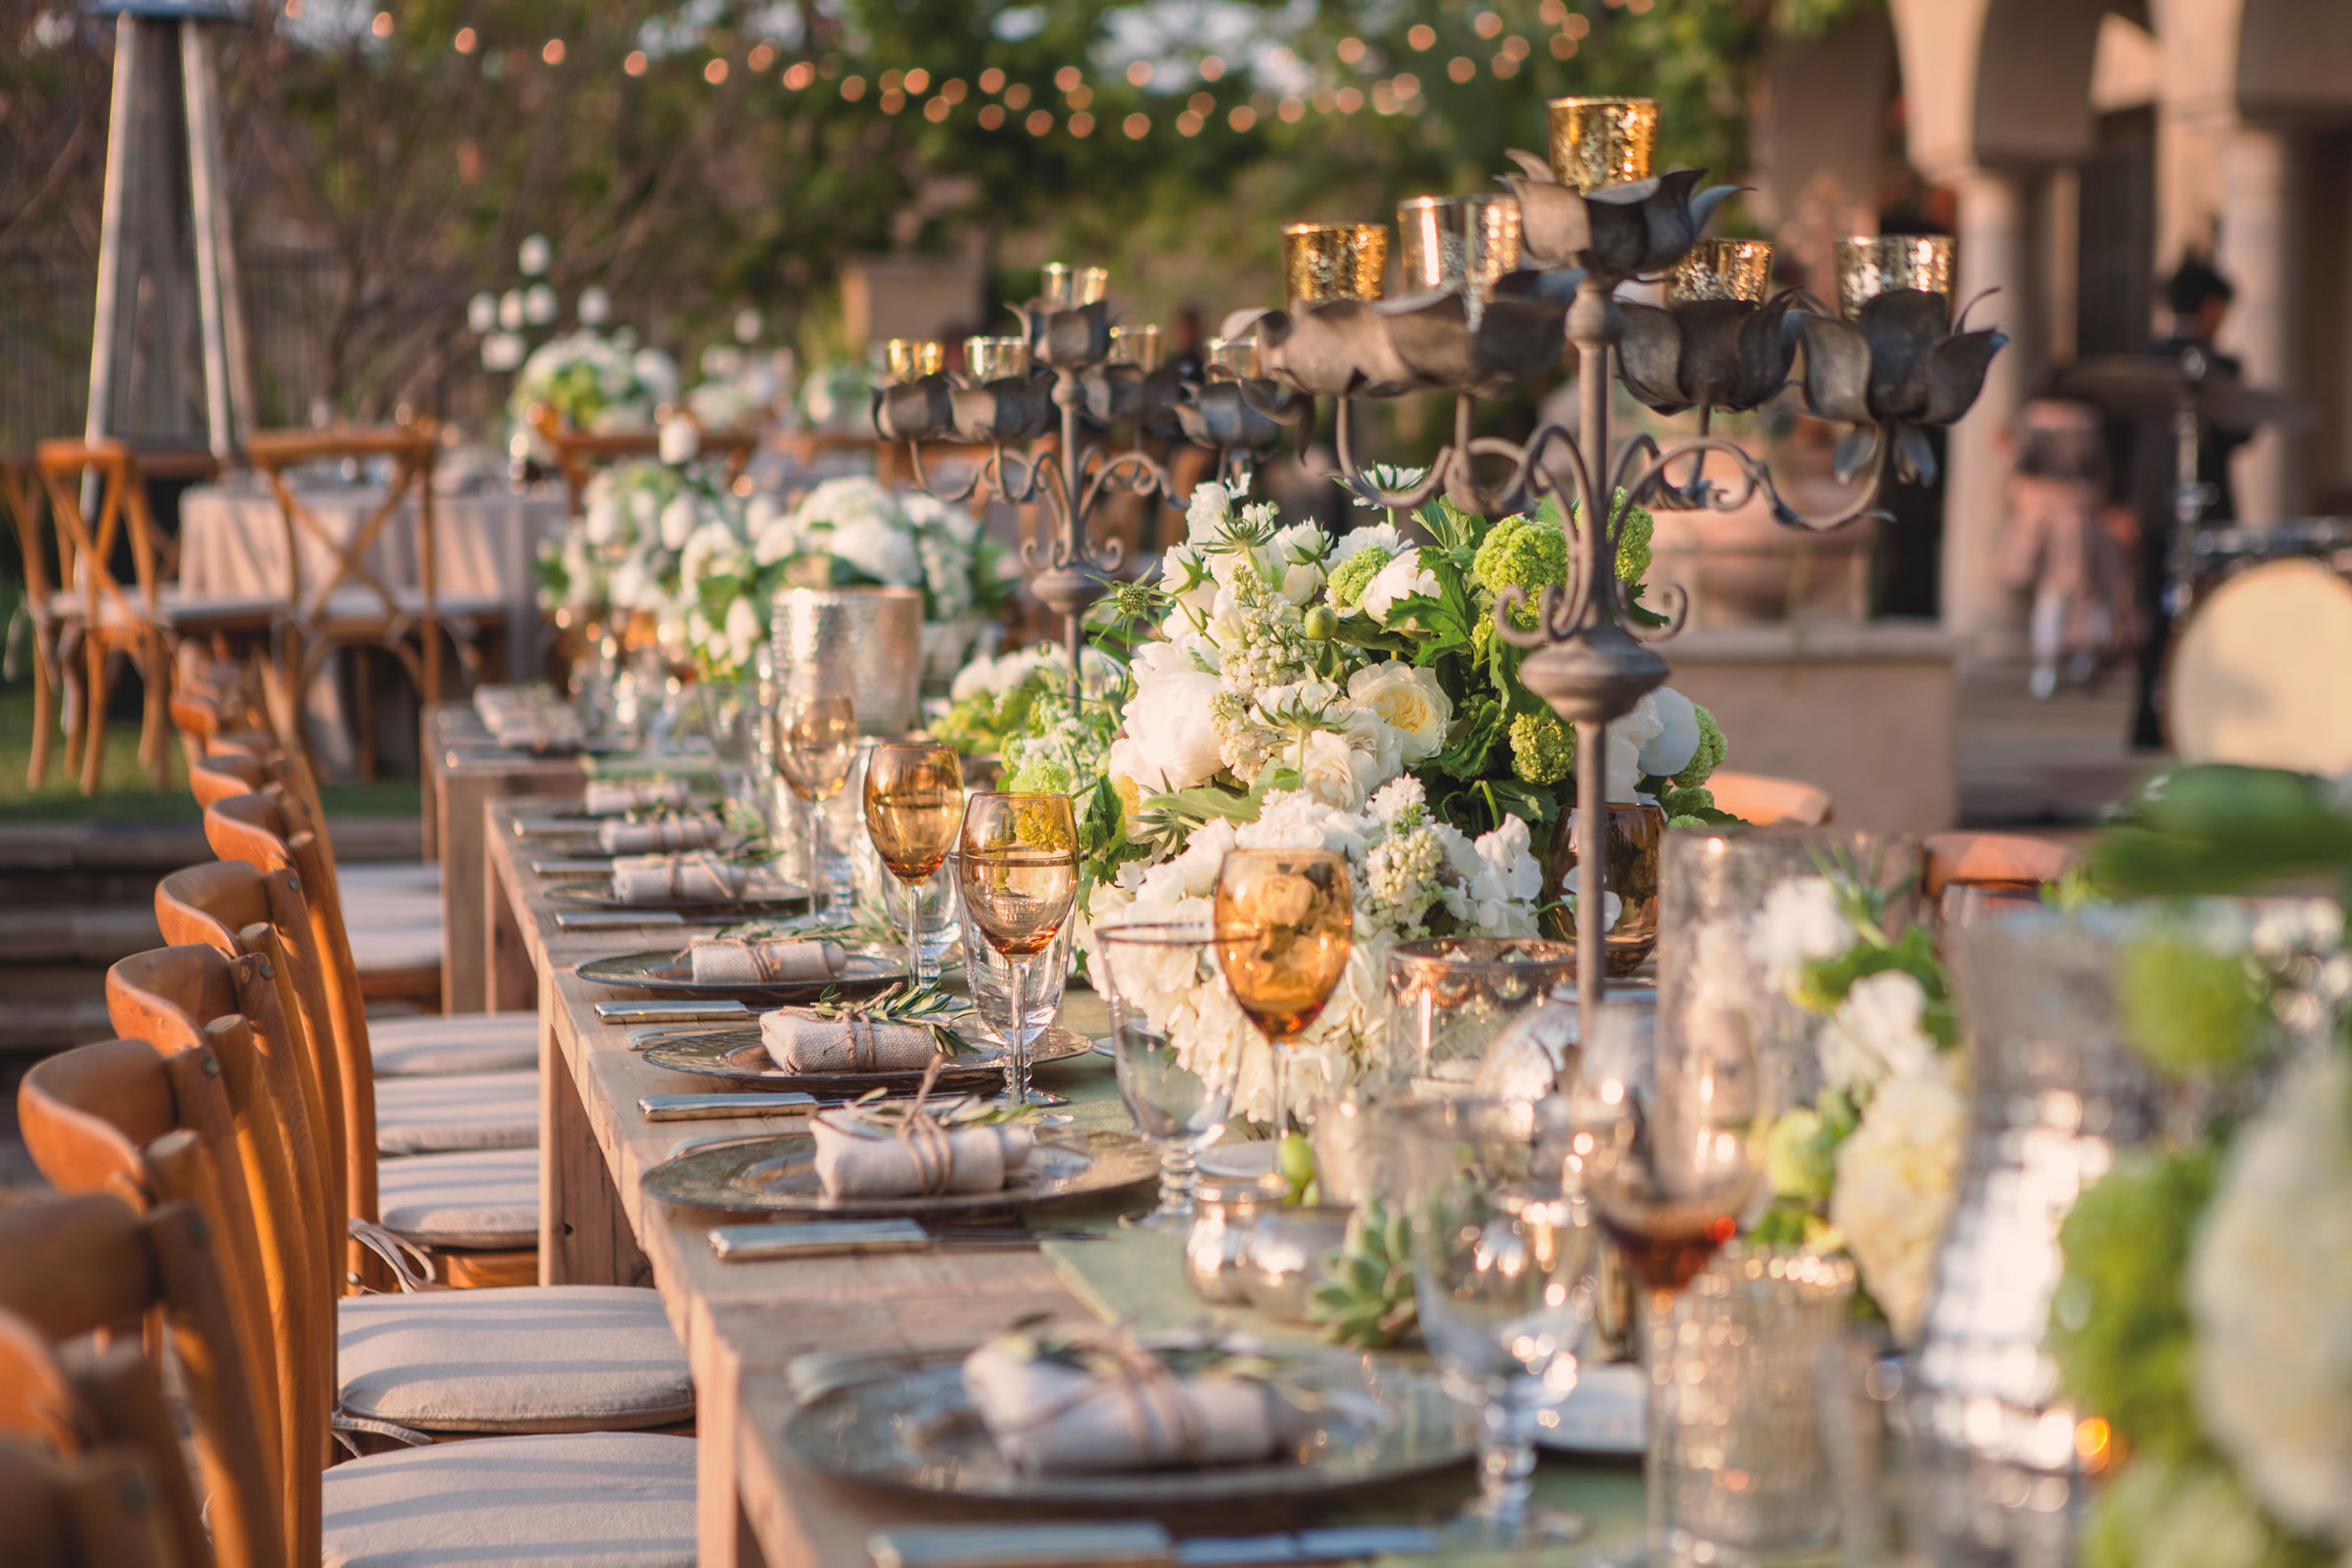 Heather Murphy Of Storied Rentals Recommends Neutral Bases With Pops Of  Color For An Elegant Table